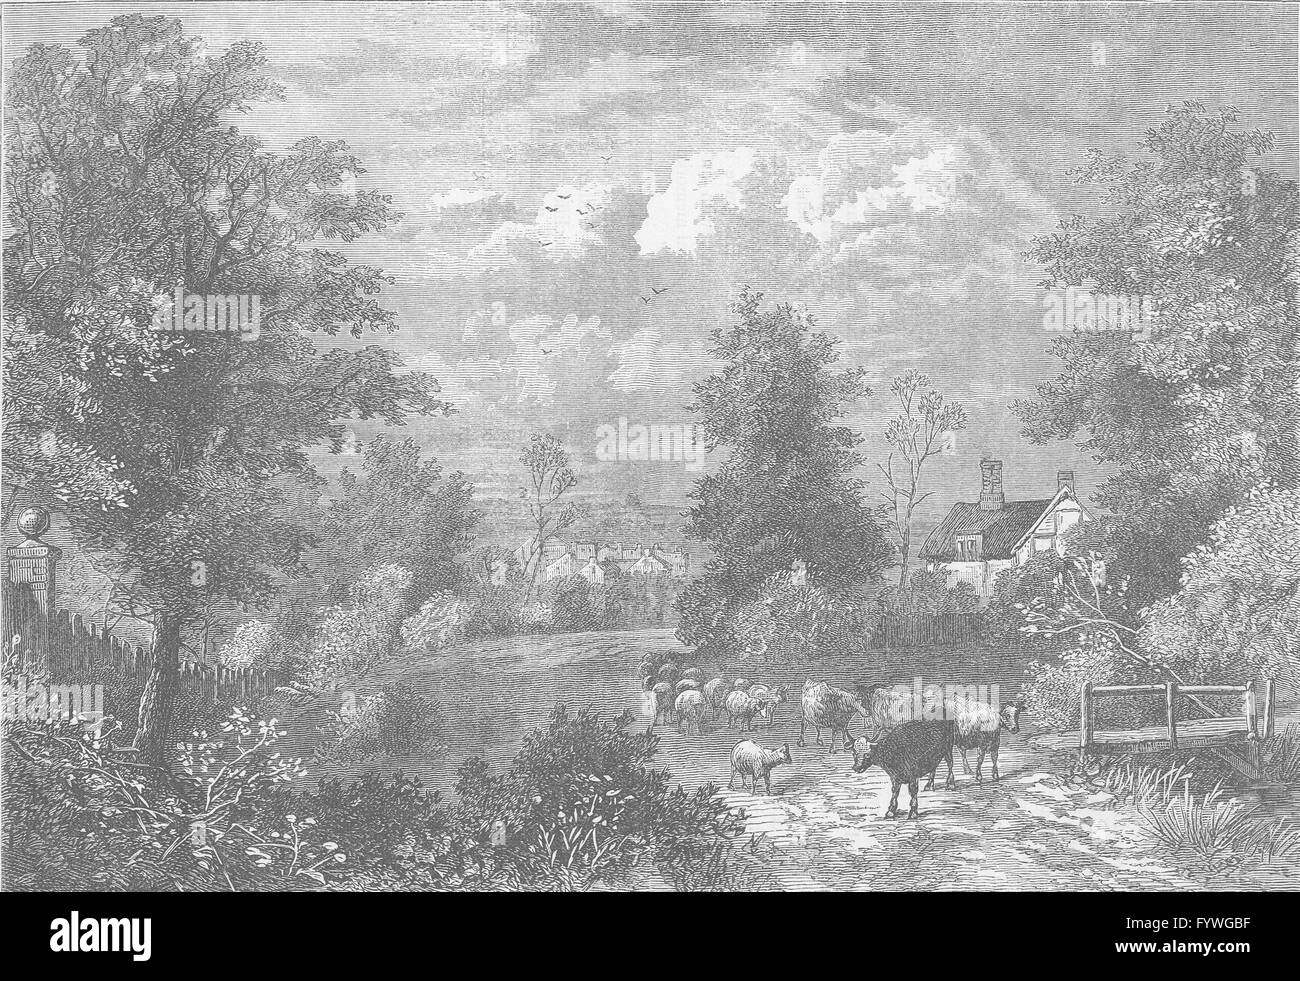 NOTTING HILL: View in 1750. London, antique print c1880 - Stock Image